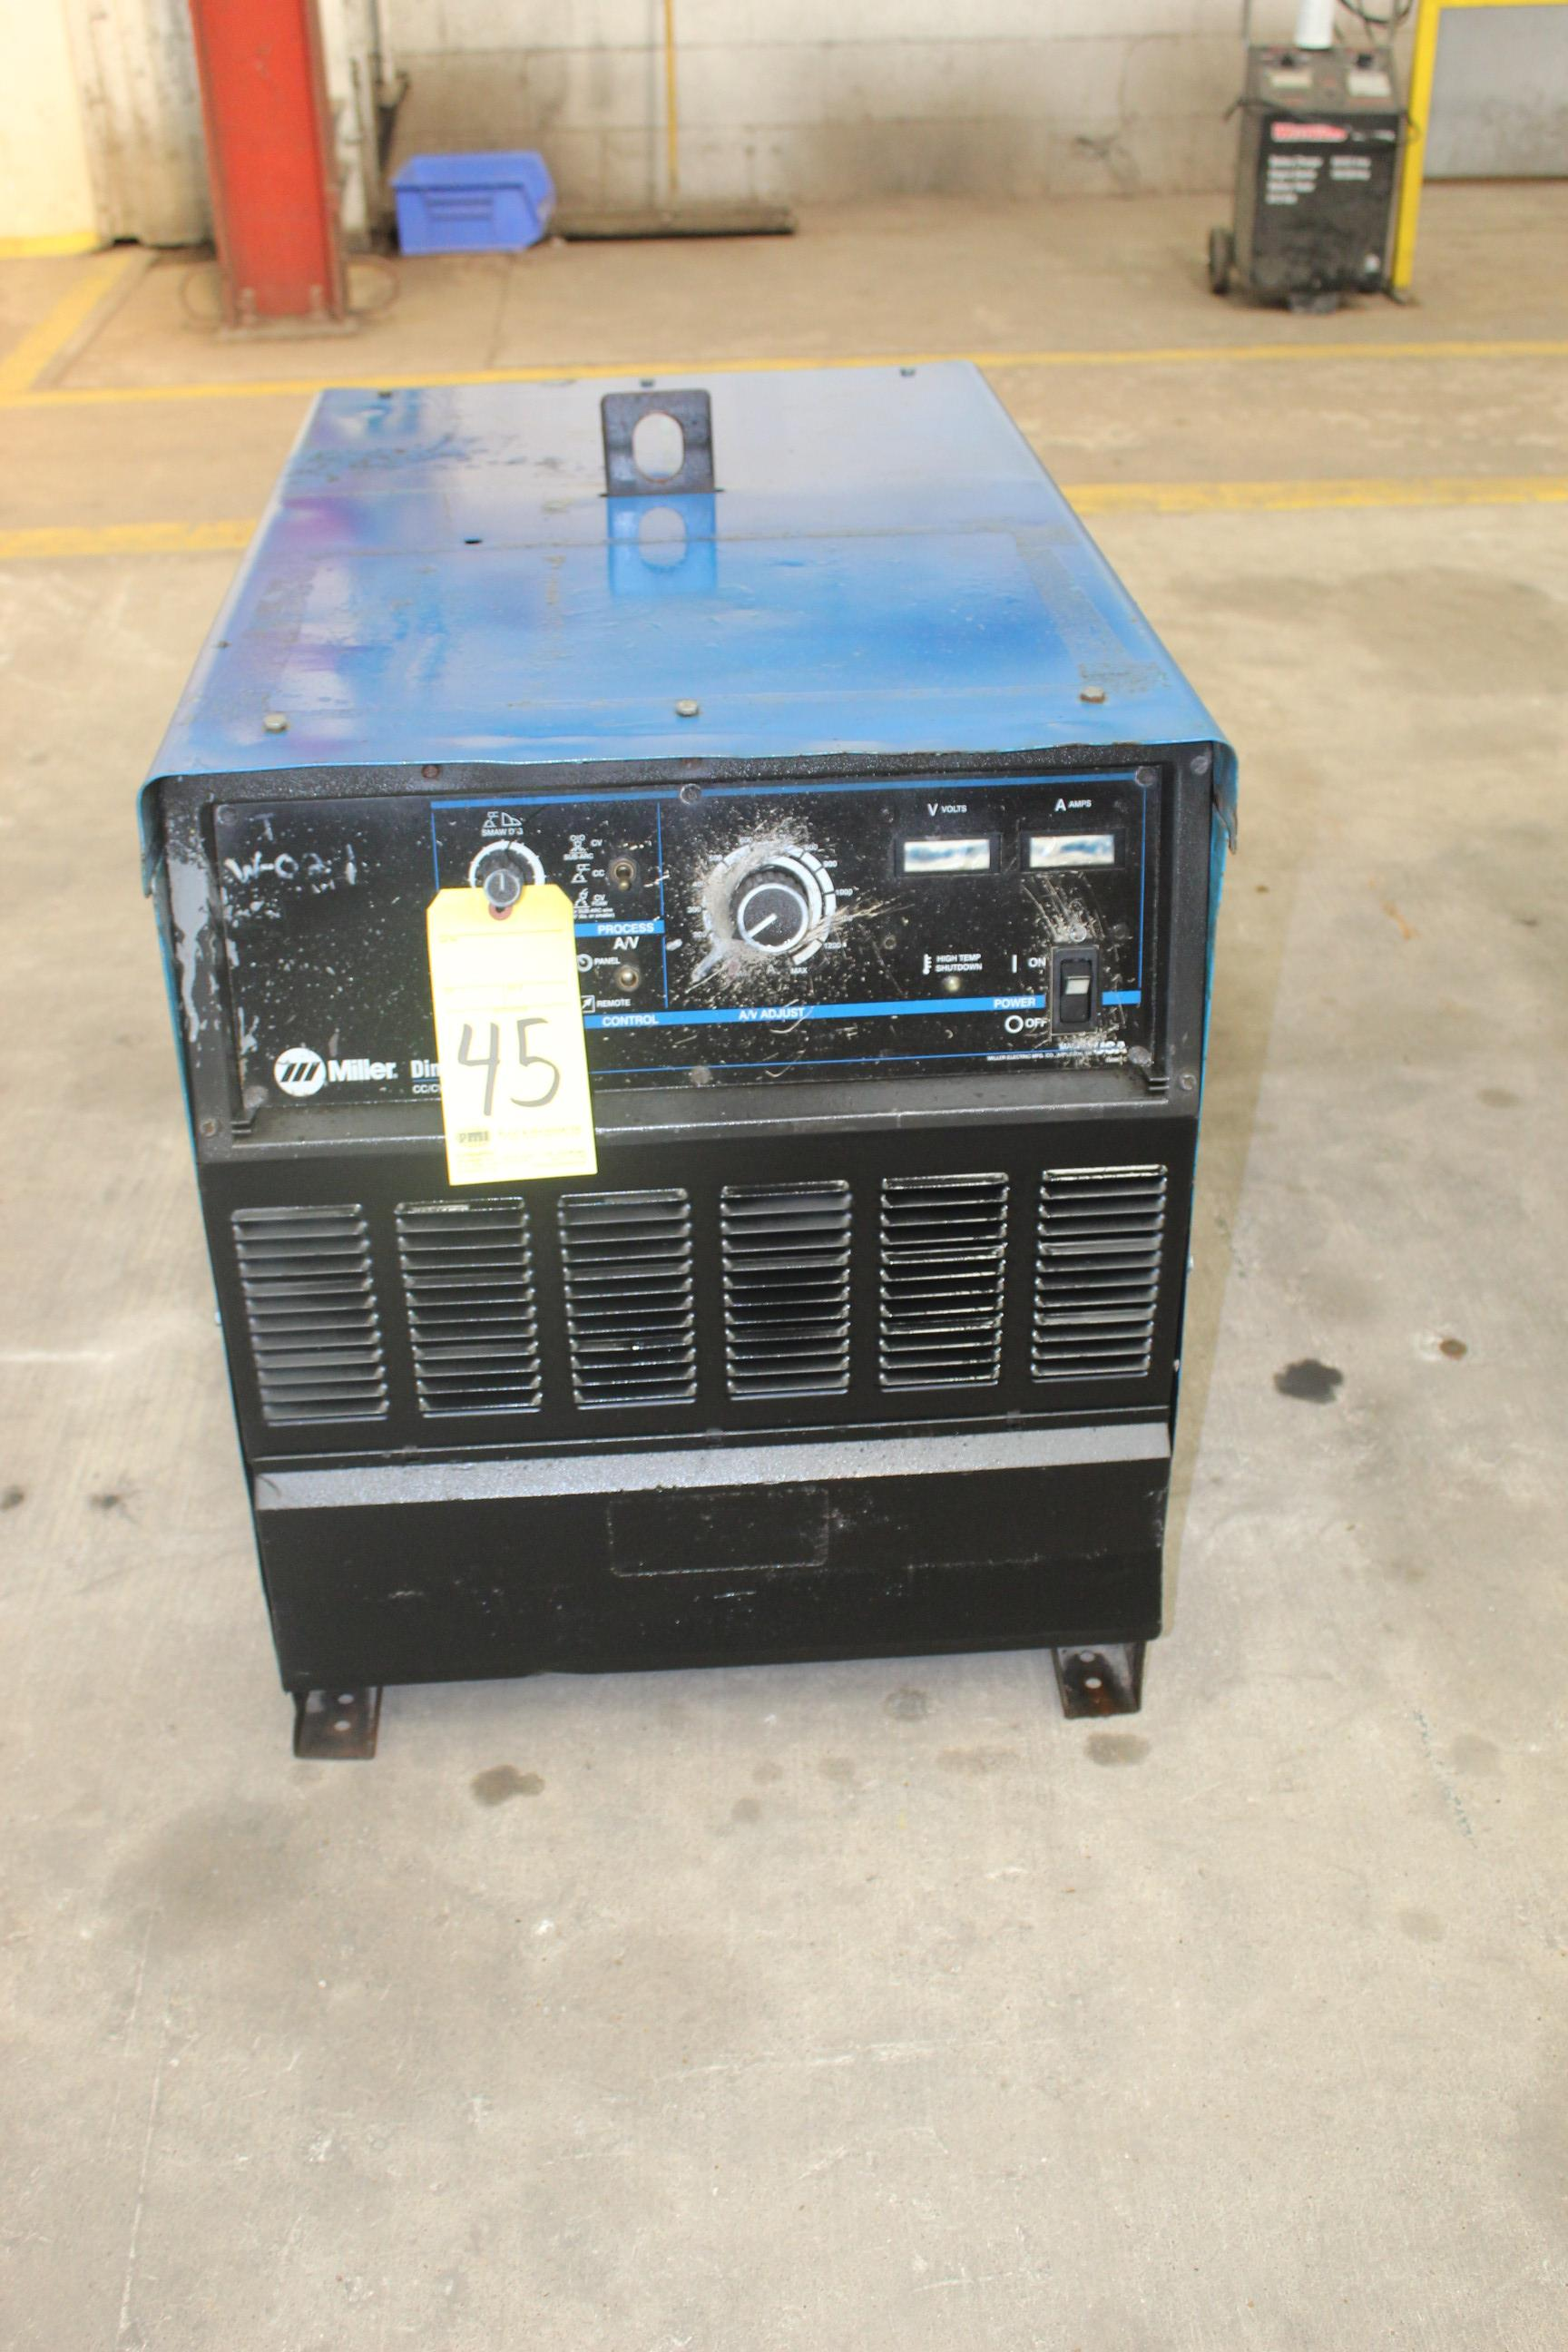 WELDING MACHINE, MILLER MDL. DIMENSION 1000, 1,000 amps @ 44 v., 100% duty cycle, S/N LF161800